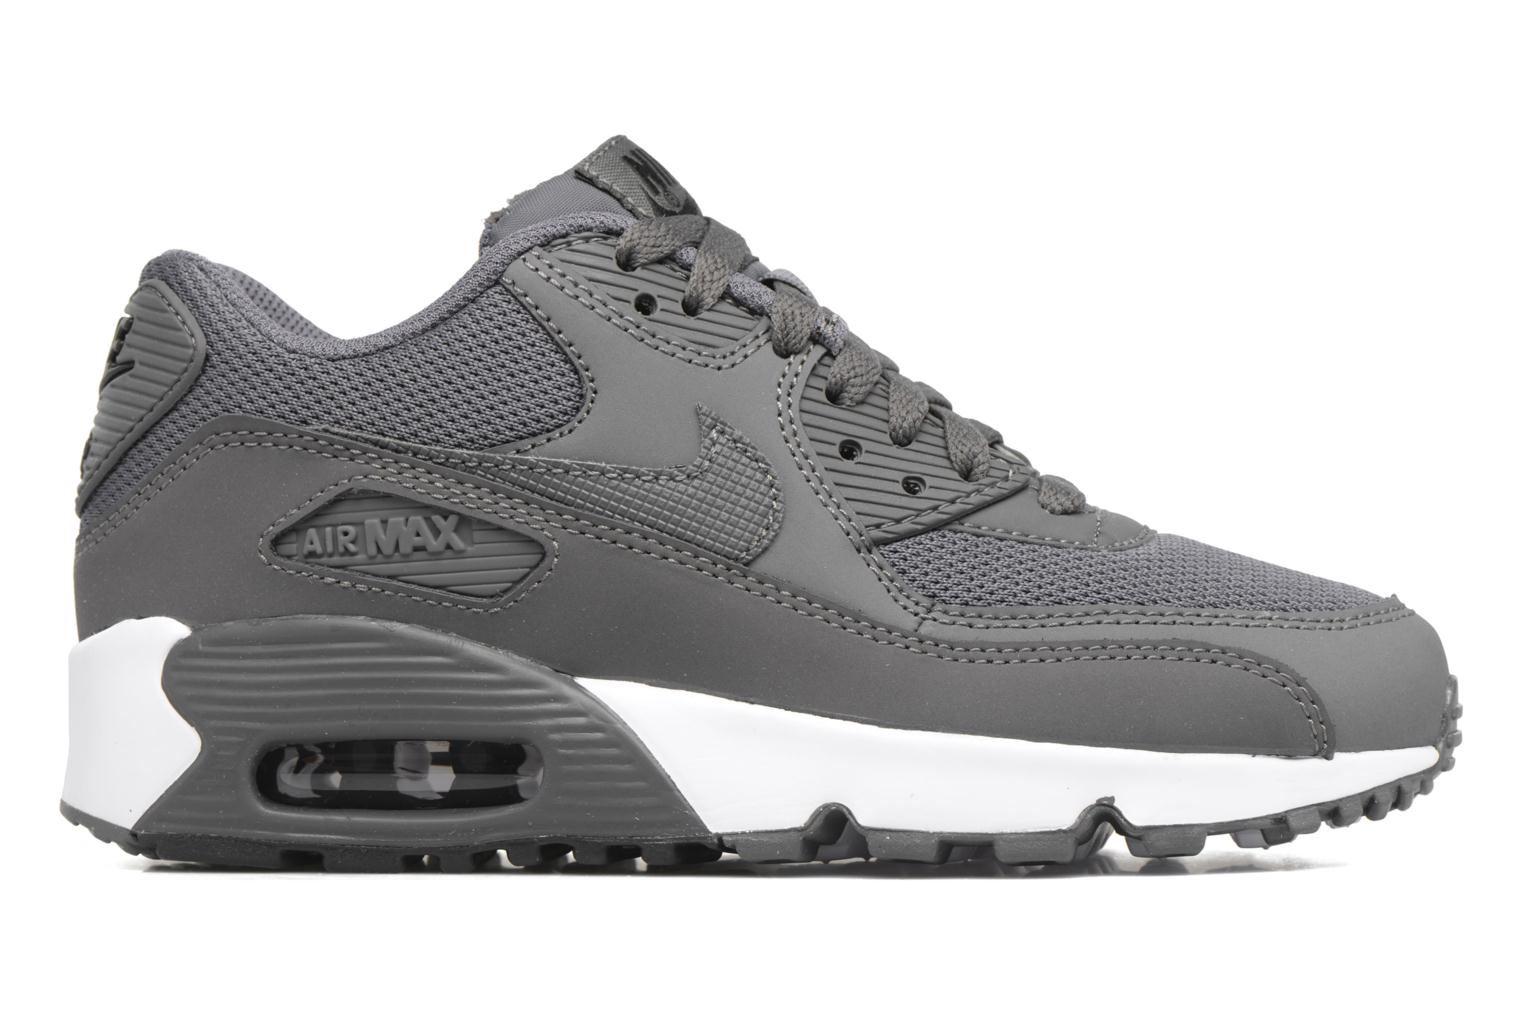 NIKE AIR MAX 90 MESH (GS) Dark Grey/Dark Grey-Black-White